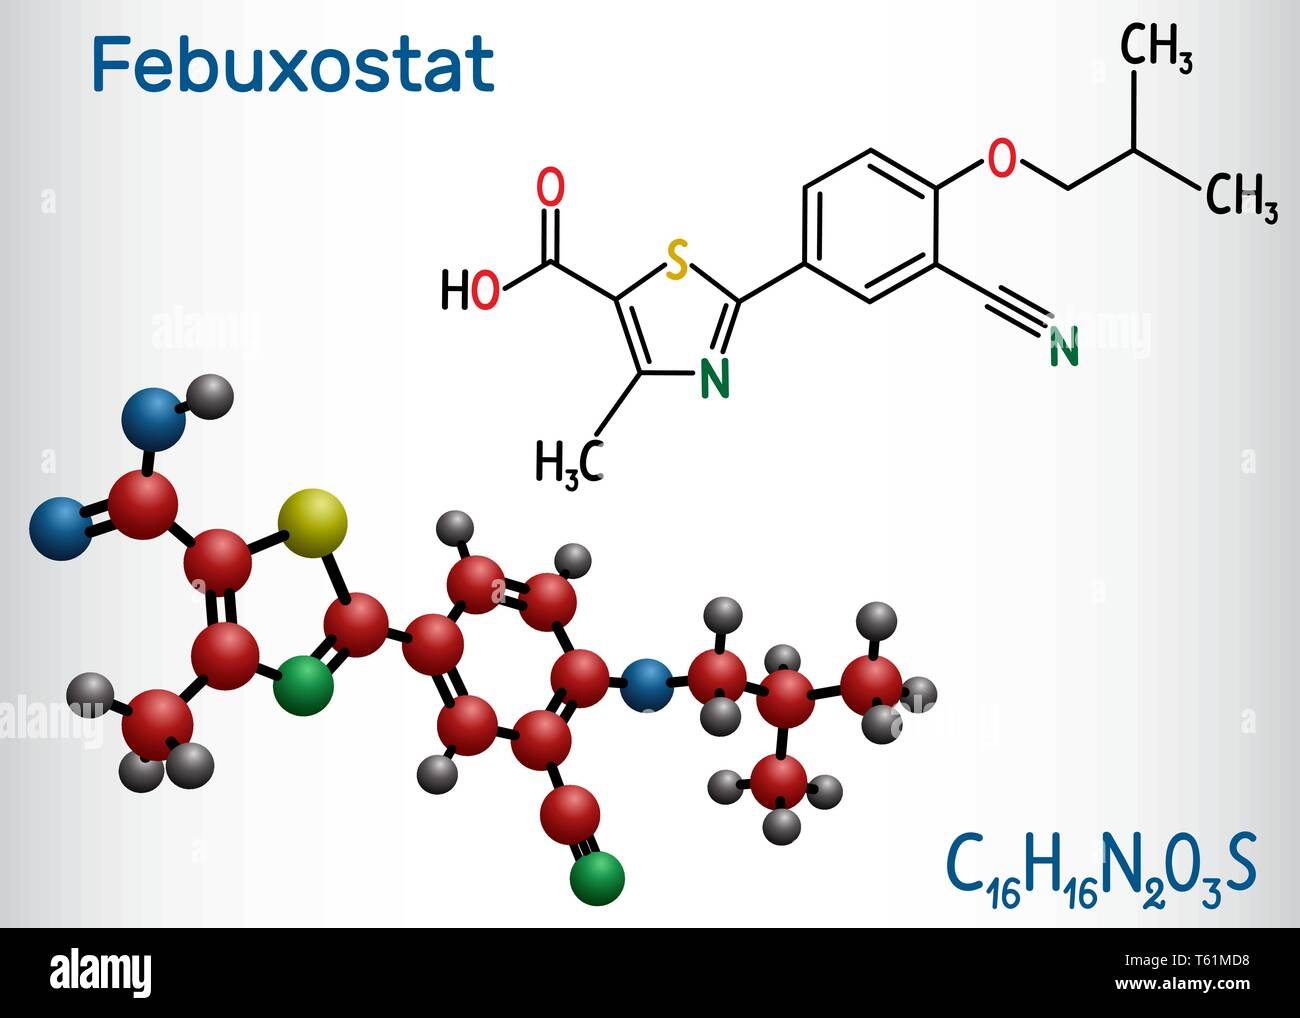 Febuxostat molecule. Structural chemical formula and molecule model. Vector illustration - Stock Image